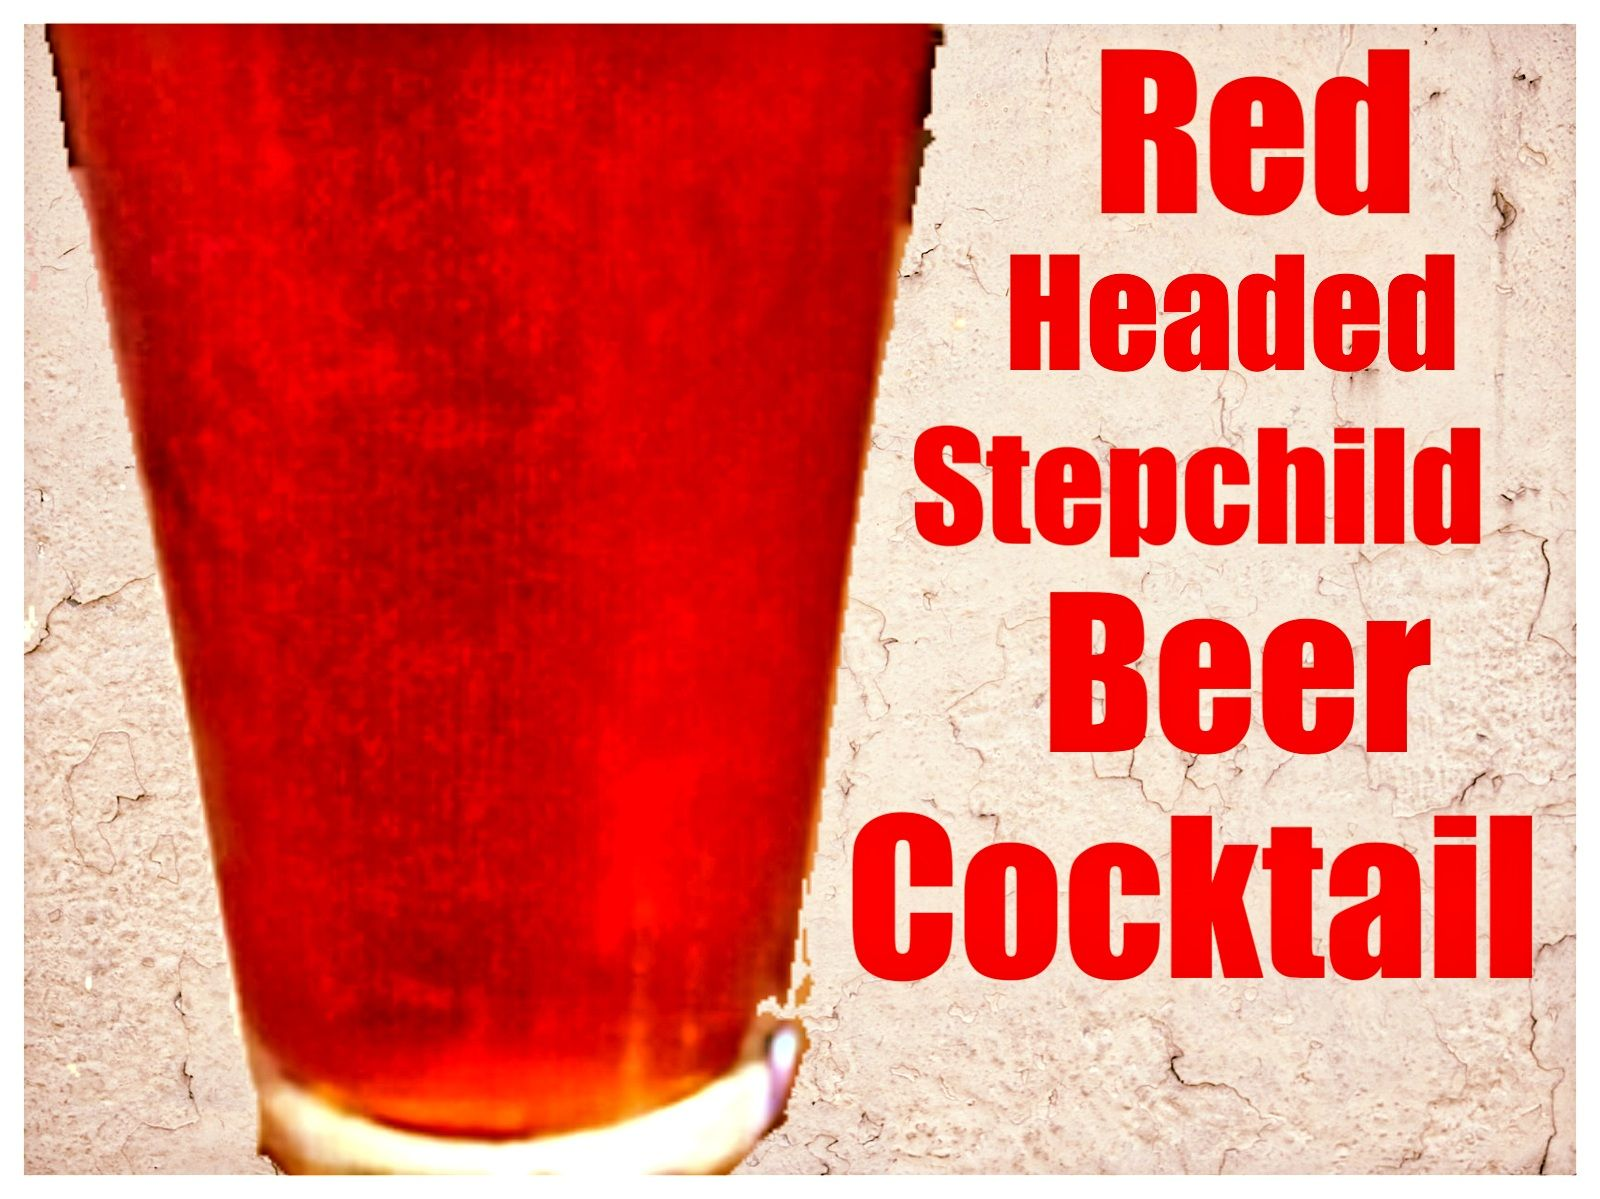 Become A Patron White Noise Presents The Red Headed Step Child Beer Cocktail My Friends And I Tried The Red Heade Beer Cocktails Cocktails Step Kids